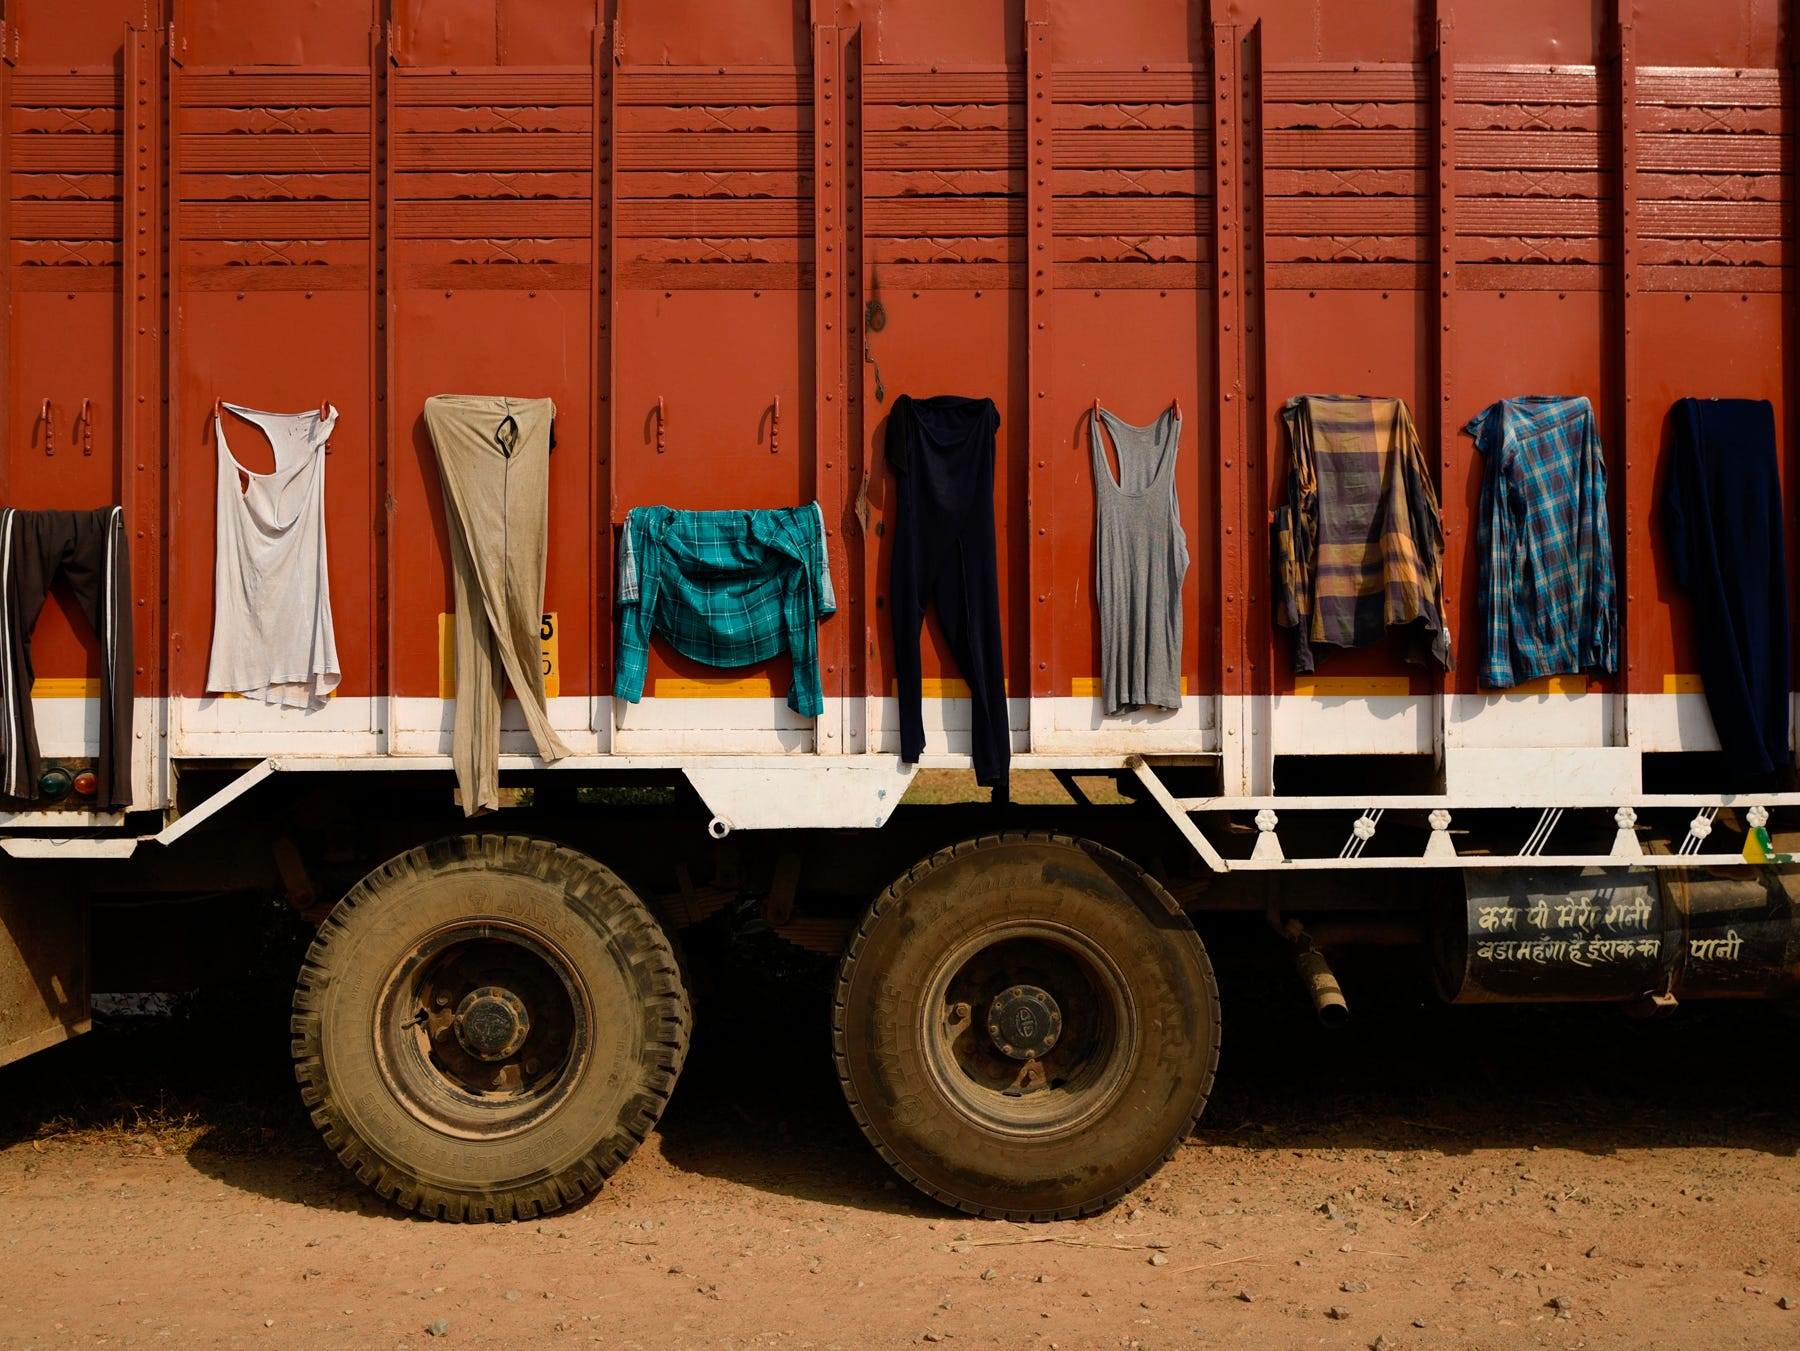 Clothes belonging to truck drivers are hung out to dry on the body of a truck in Mathura, India, Friday, Oct. 19, 2018. Truck drivers and their assistants spend weeks on the road making the highway their home. (AP Photo/R.S. Iyer)